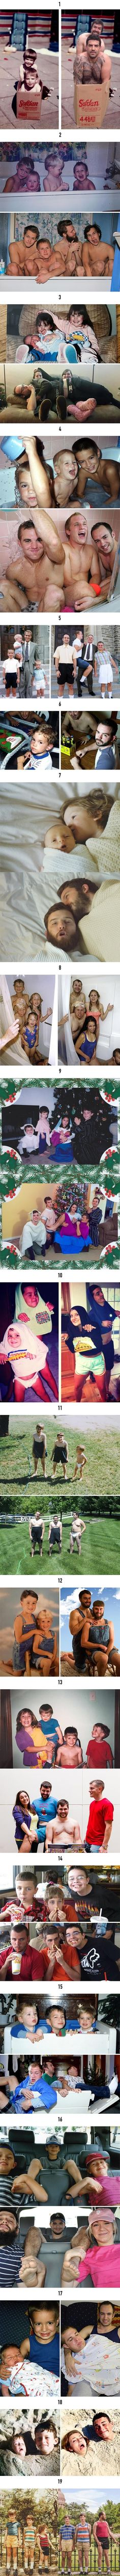 Siblings masterfully recreate their childhood photos